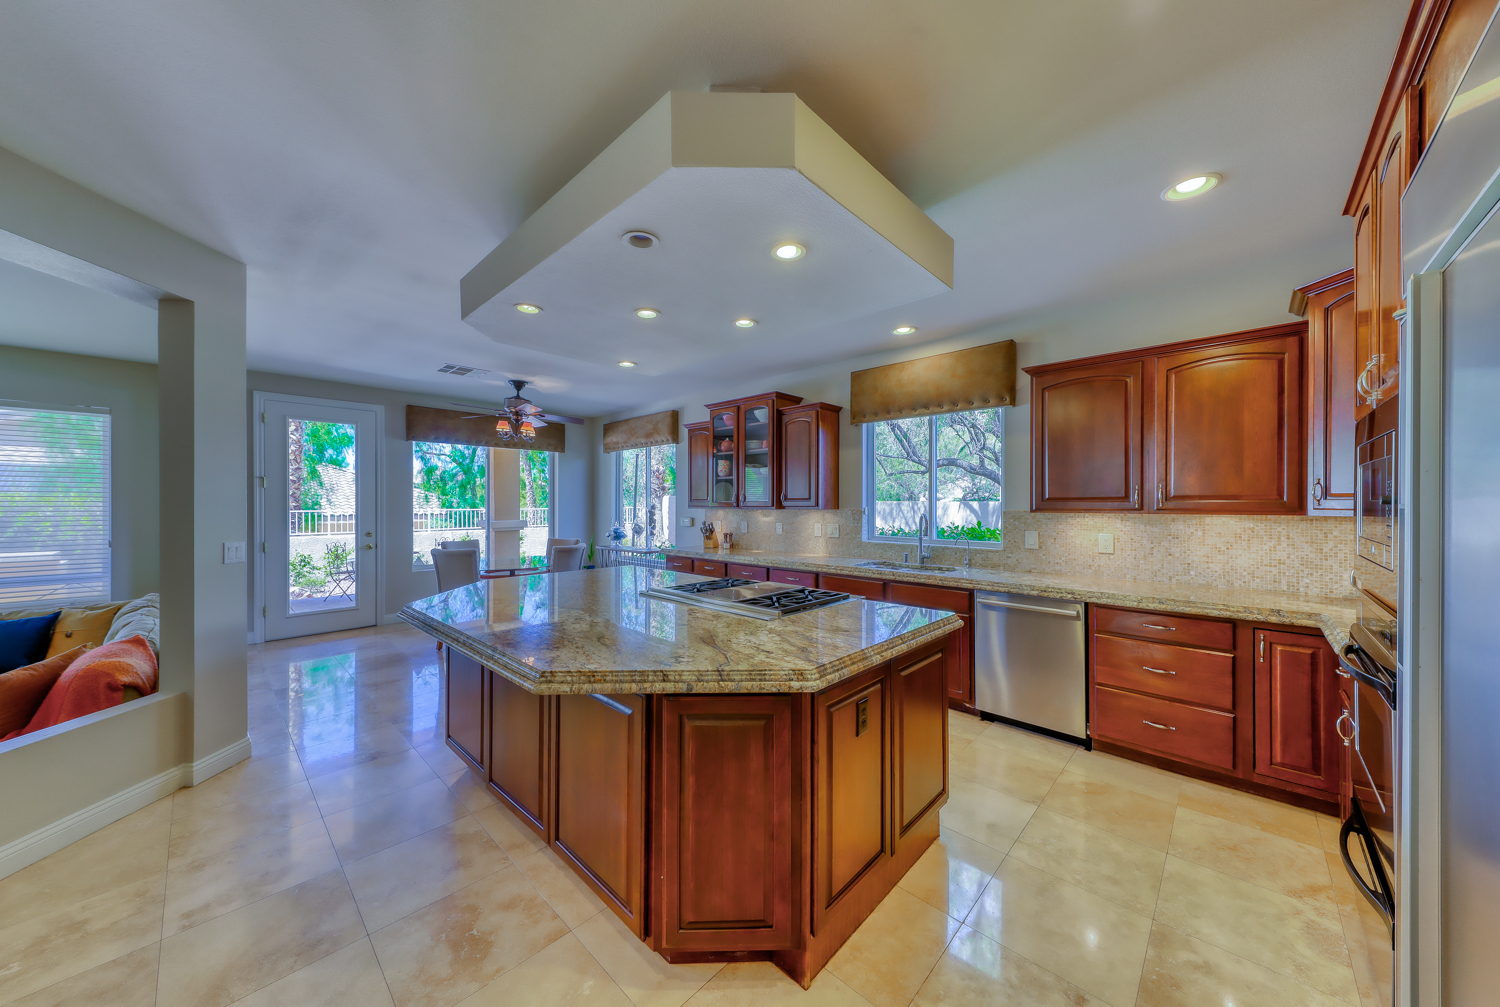 Coral Ridge Kitchen